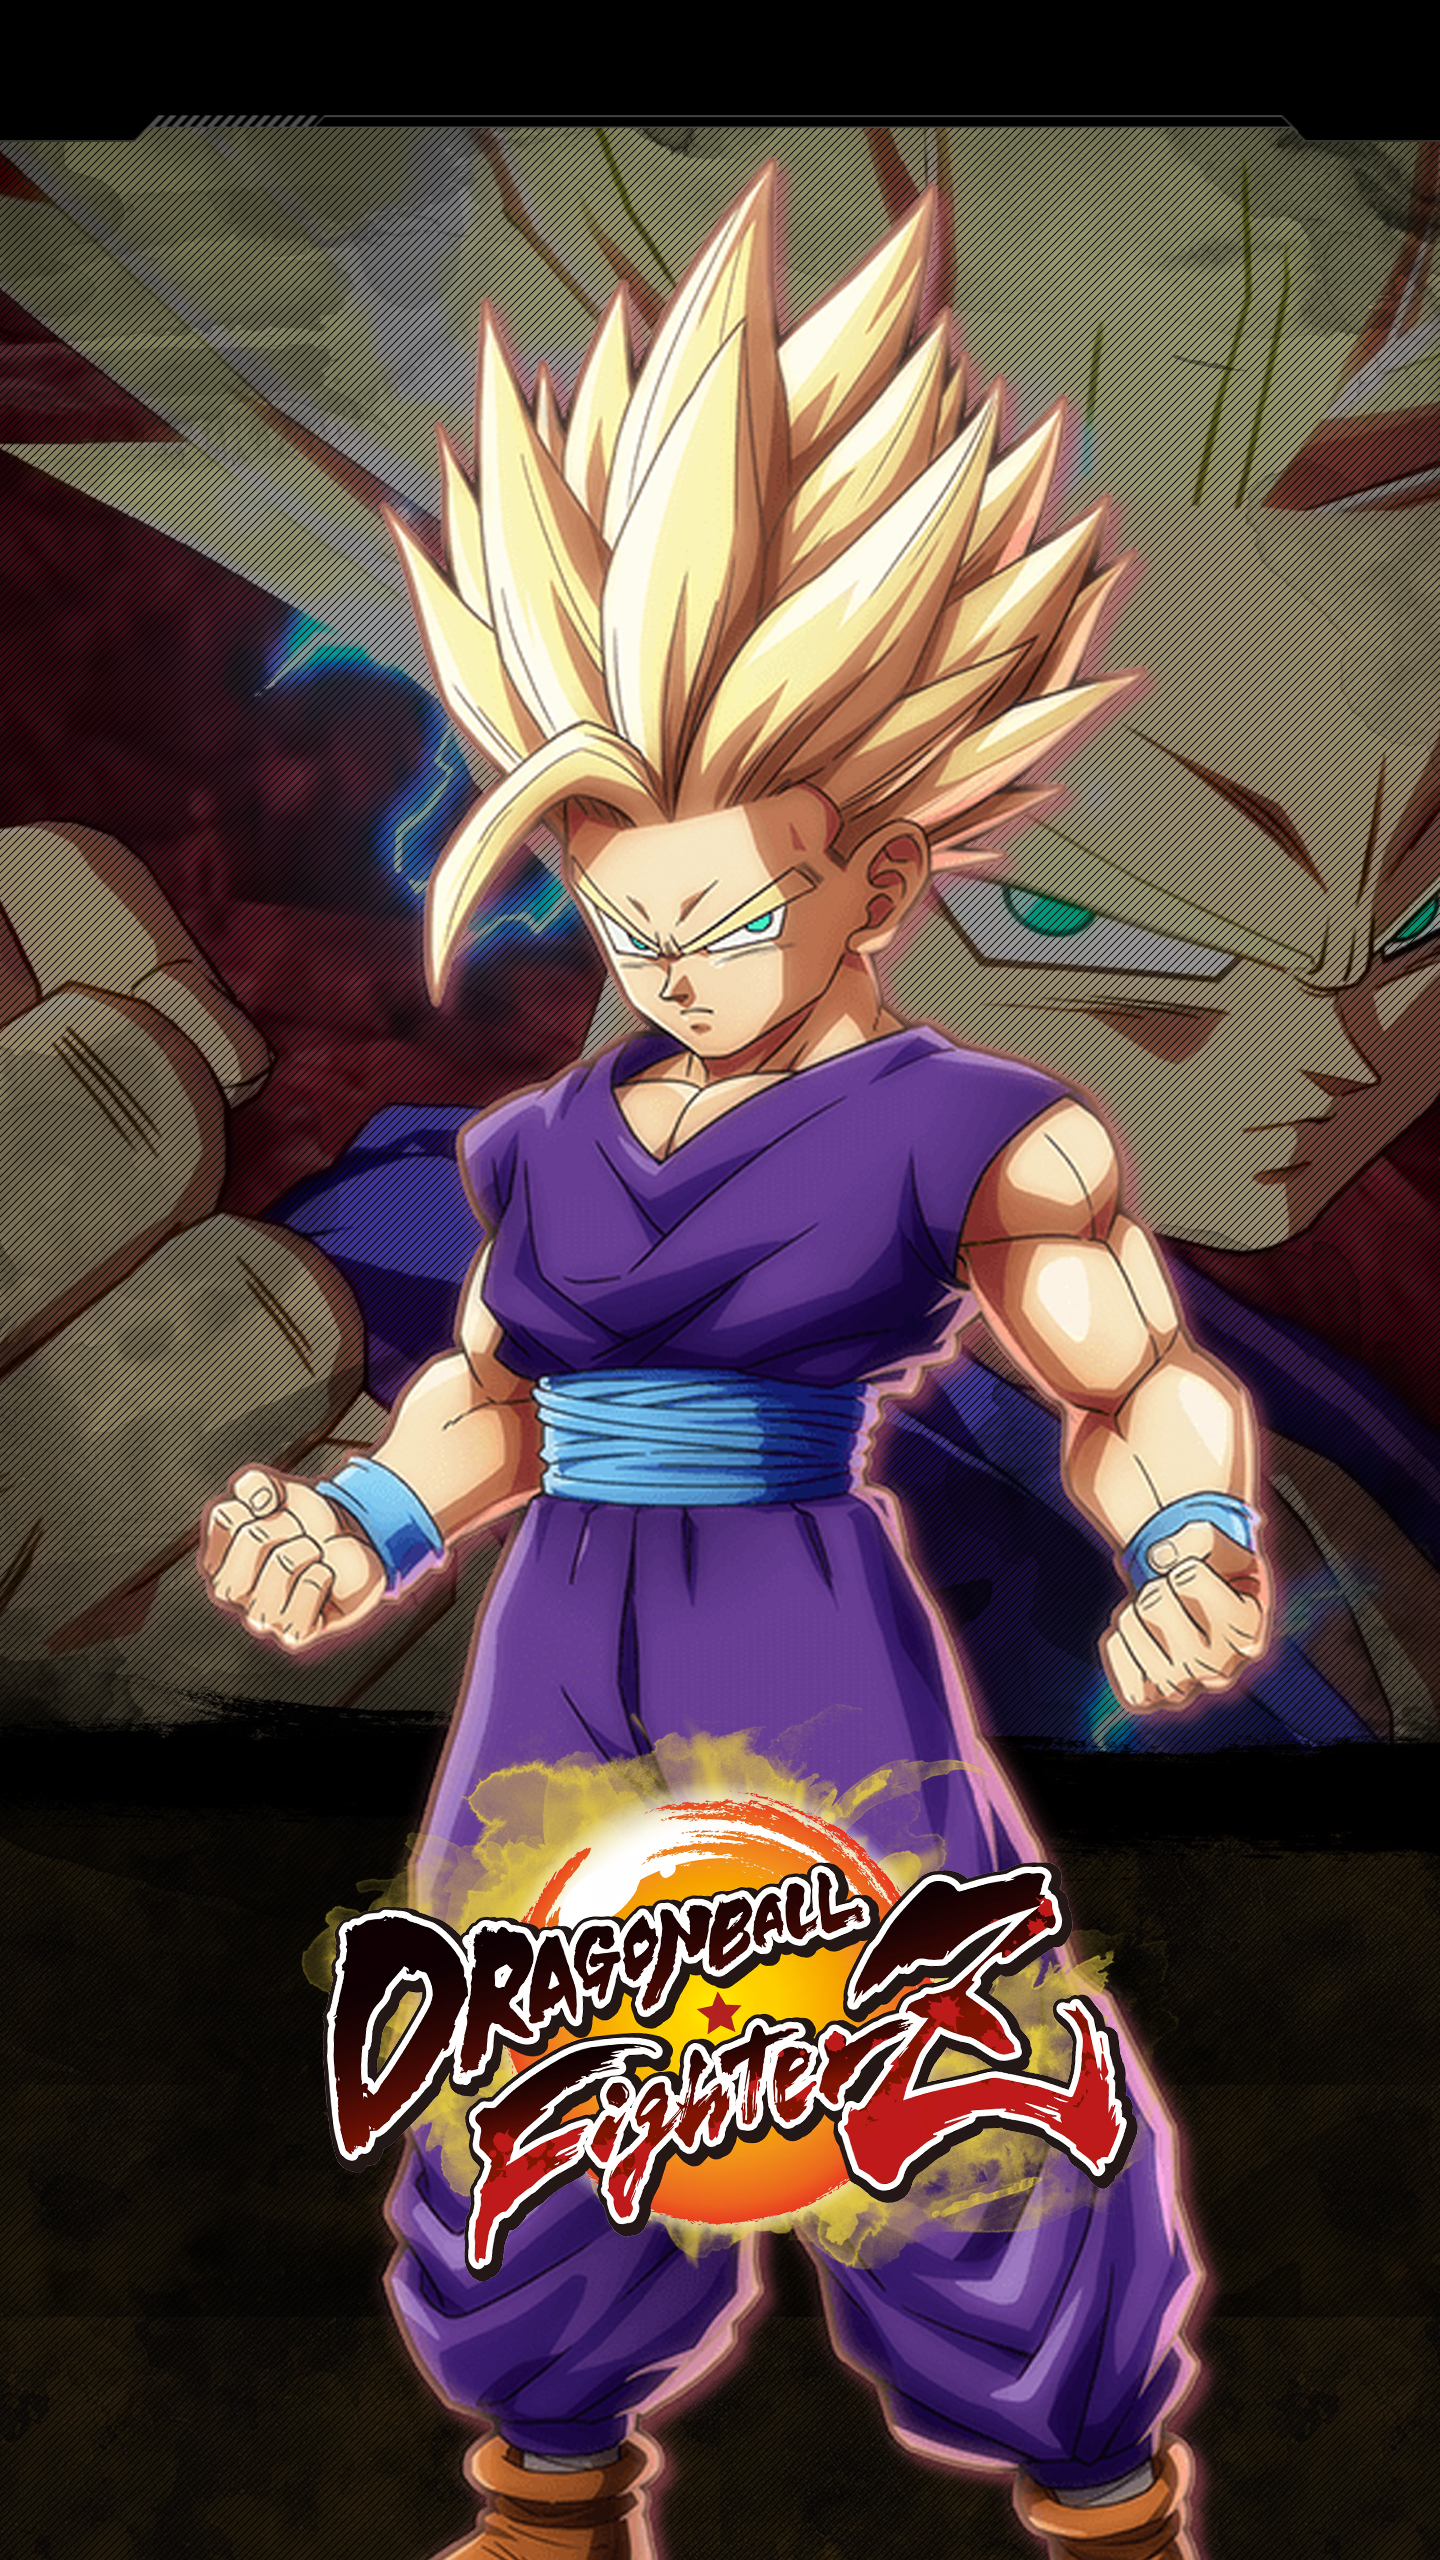 Iphone Wallpaper Size Dragon Ball Fighterz Gohan Teen Wallpapers Cat With Monocle